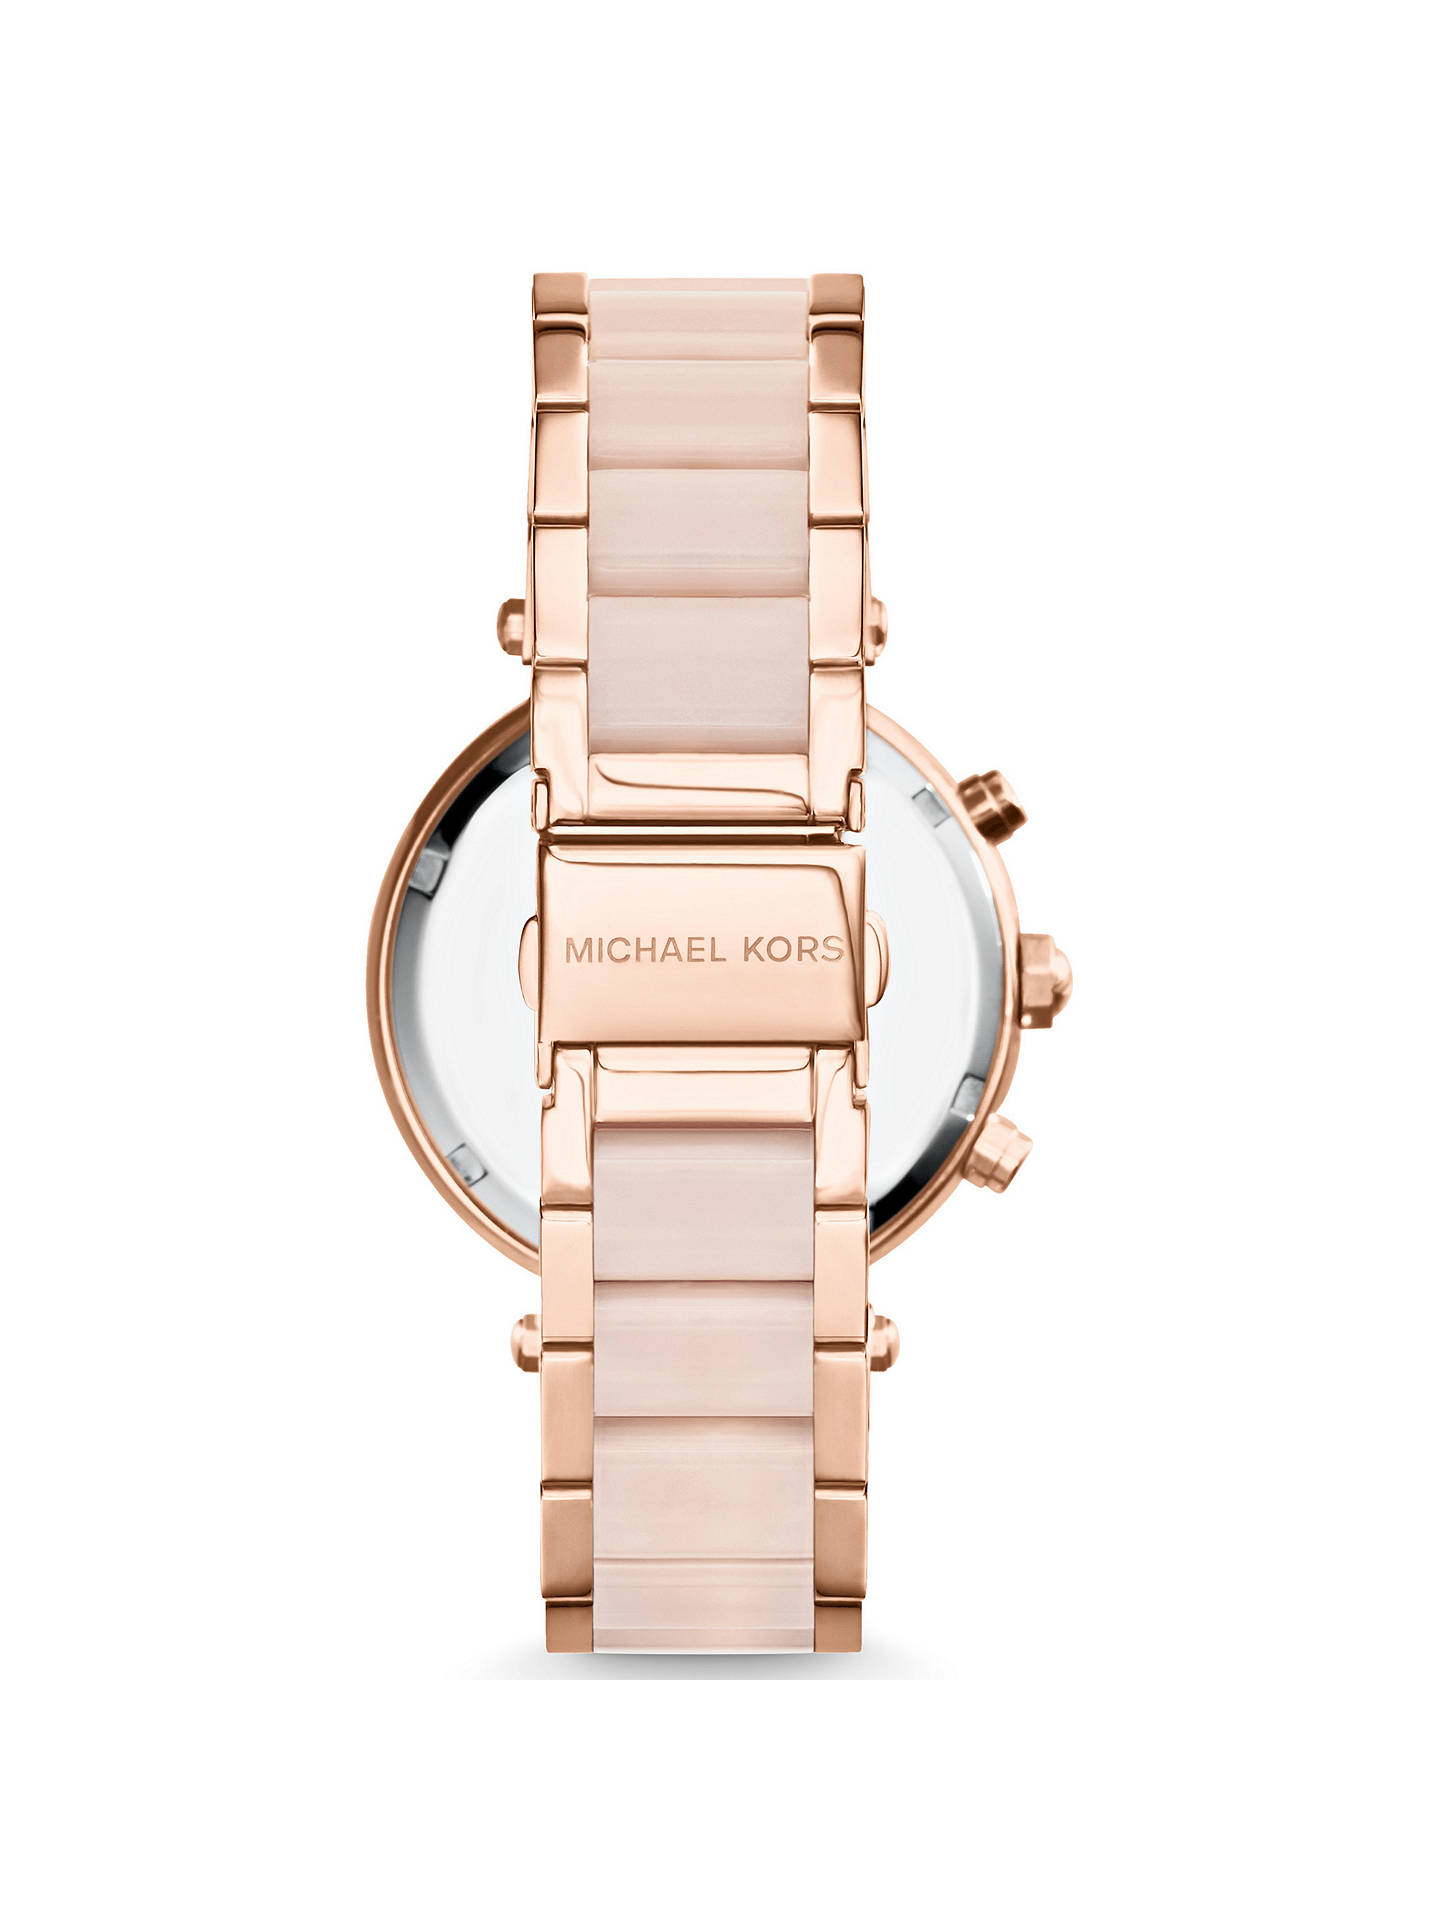 BuyMichael Kors MK5896 Women's Parker Chronograph Bracelet Strap Watch, Multi/Blush Online at johnlewis.com